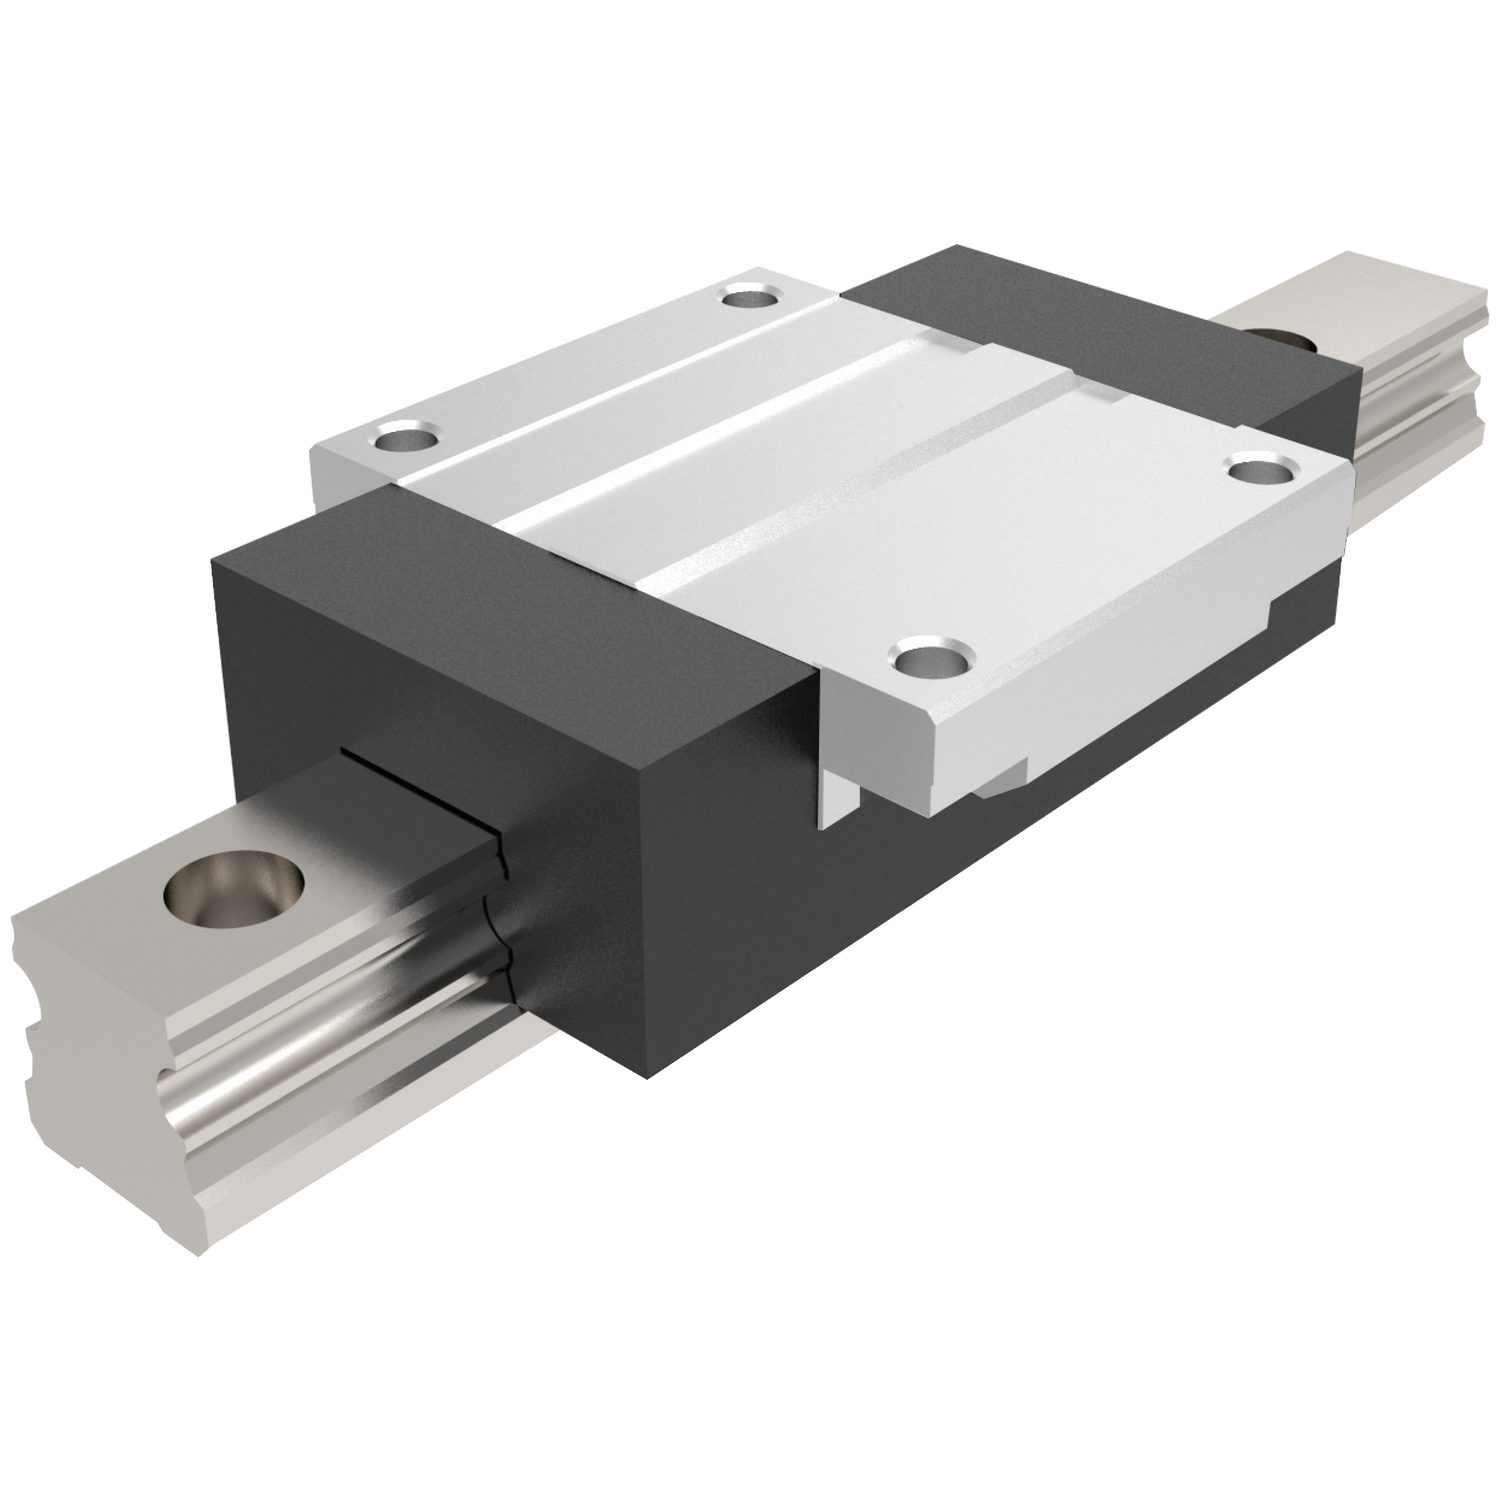 Flanged Aluminium Carriages Flanged carriages for aluminium linear guideways.